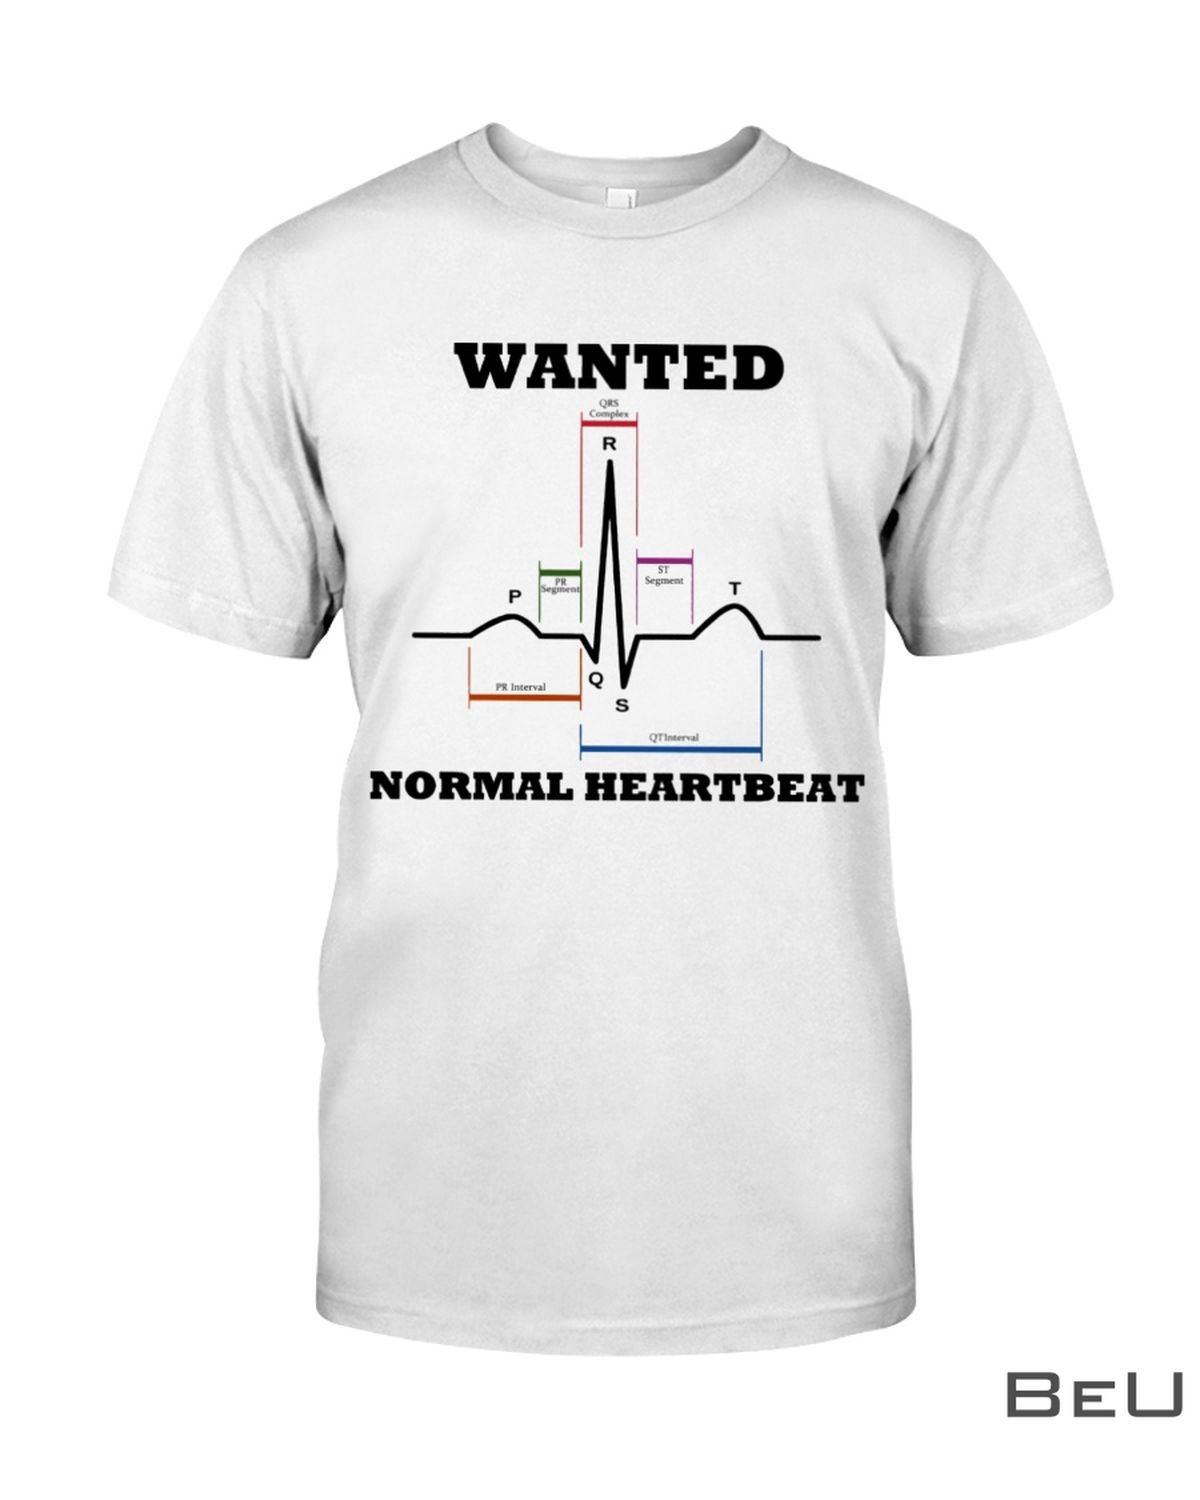 Cardiologist Wanted Normal Heartbeat Shirt